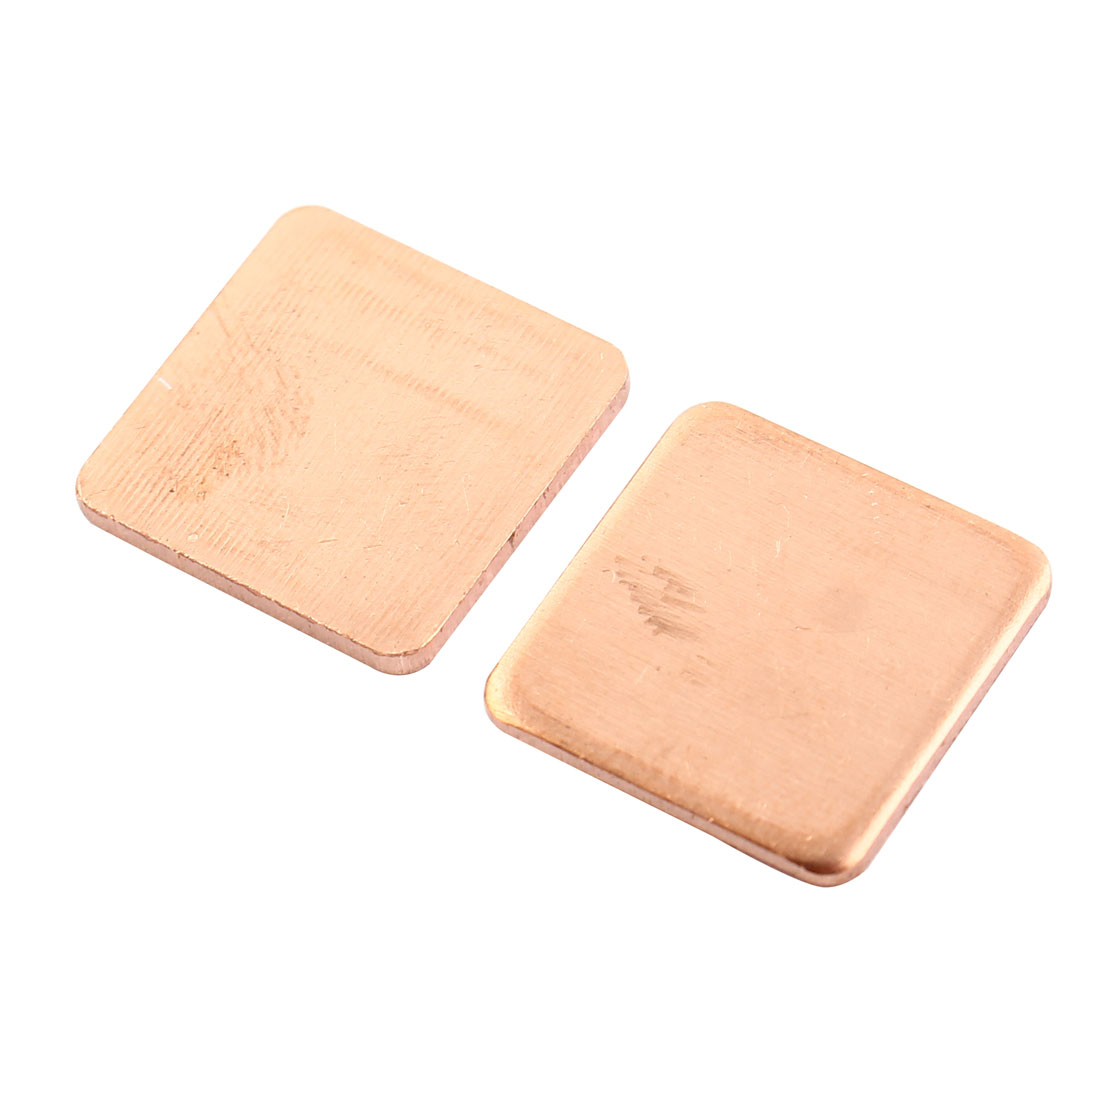 2 Pcs 1mm Thick Heatsink Thermal Pad Copper Shim for Laptop GPU